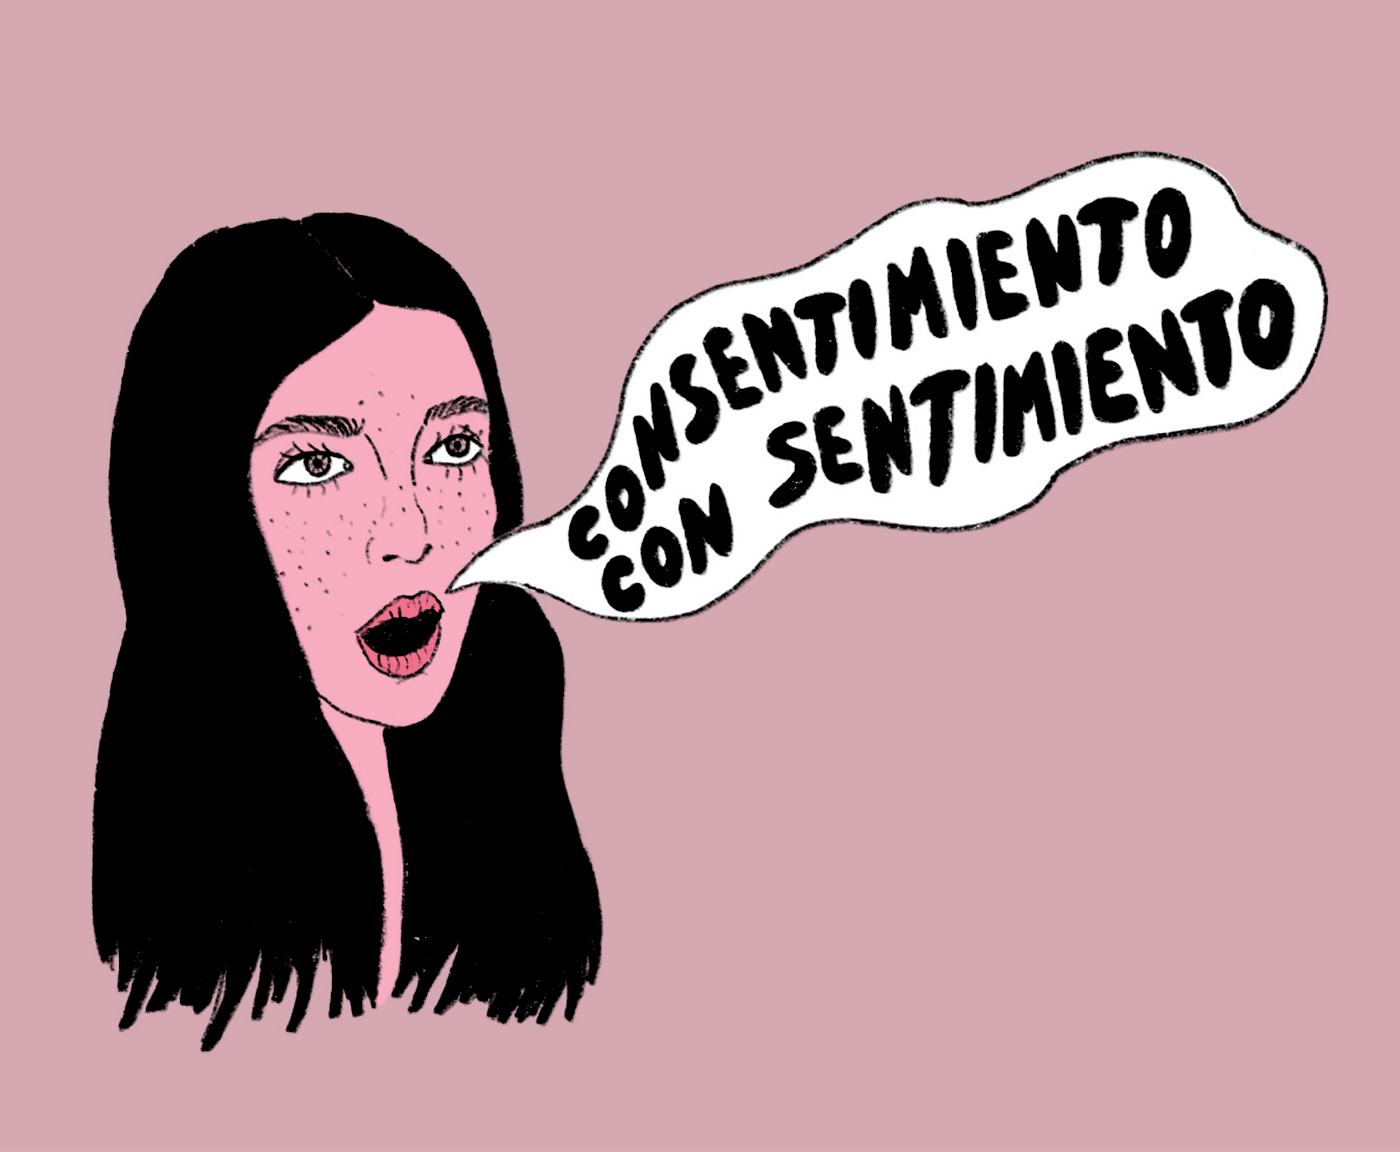 person saying: consentimeinto con sentimiento